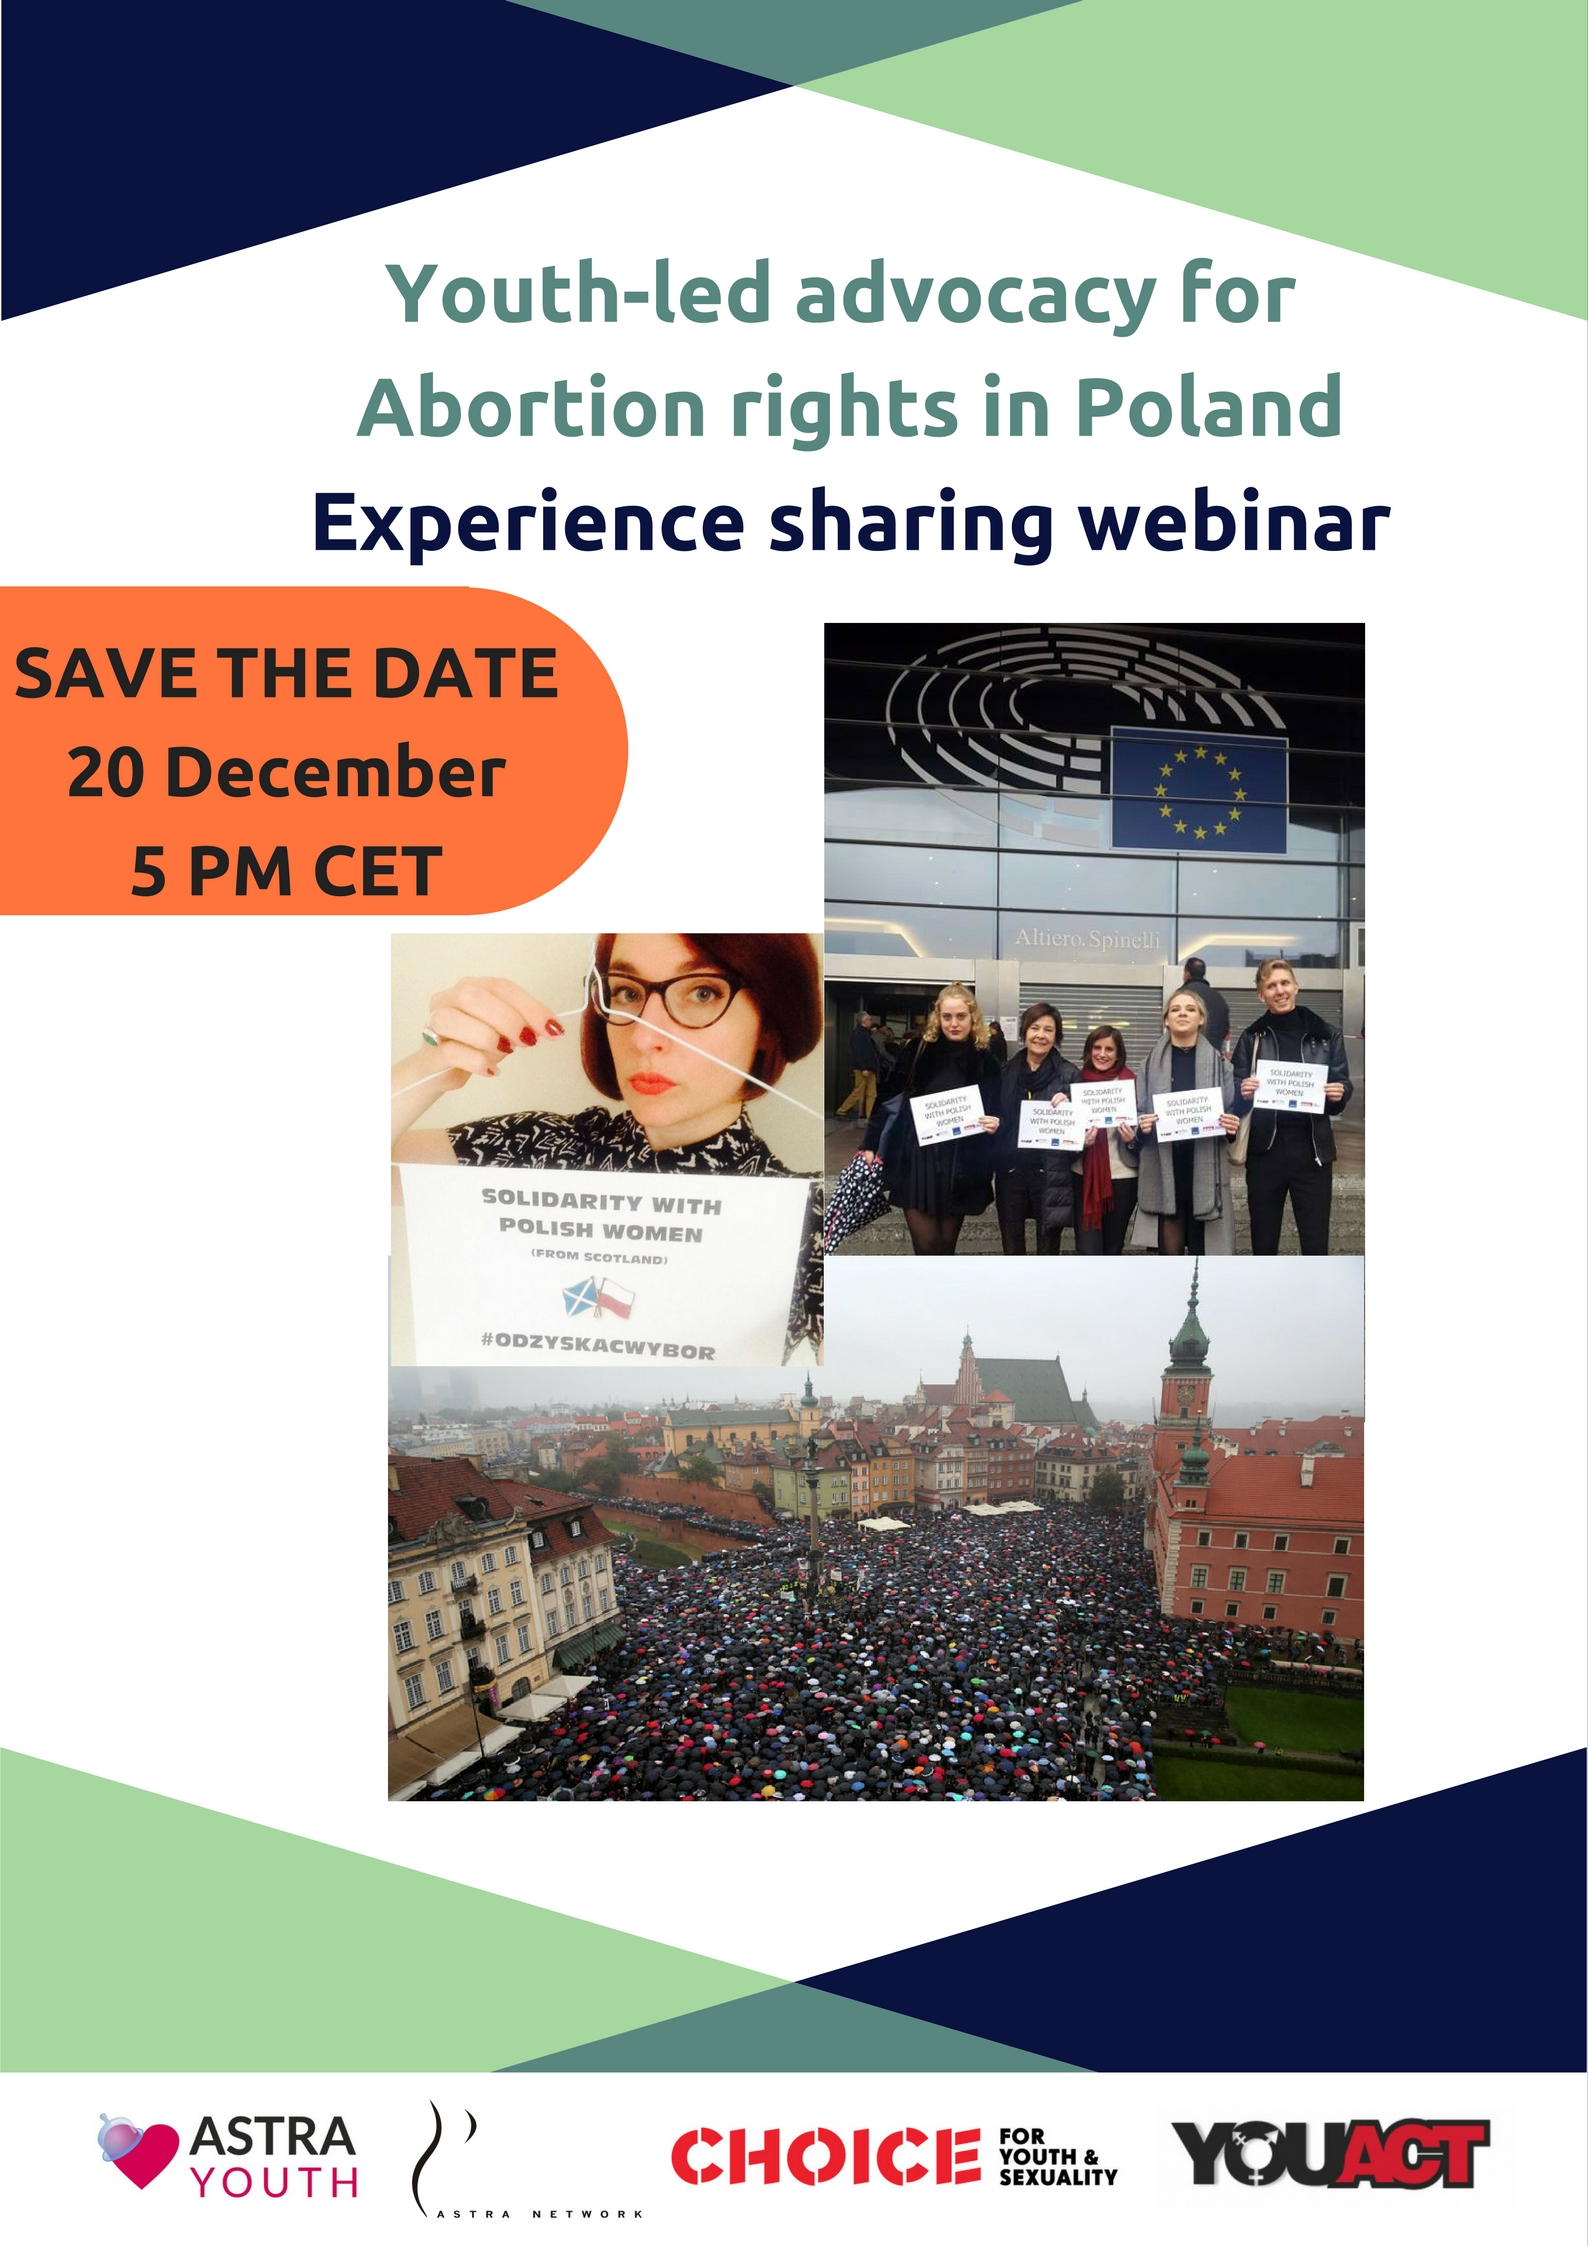 Webinar on youth-led advocacy for abortion rights in Poland